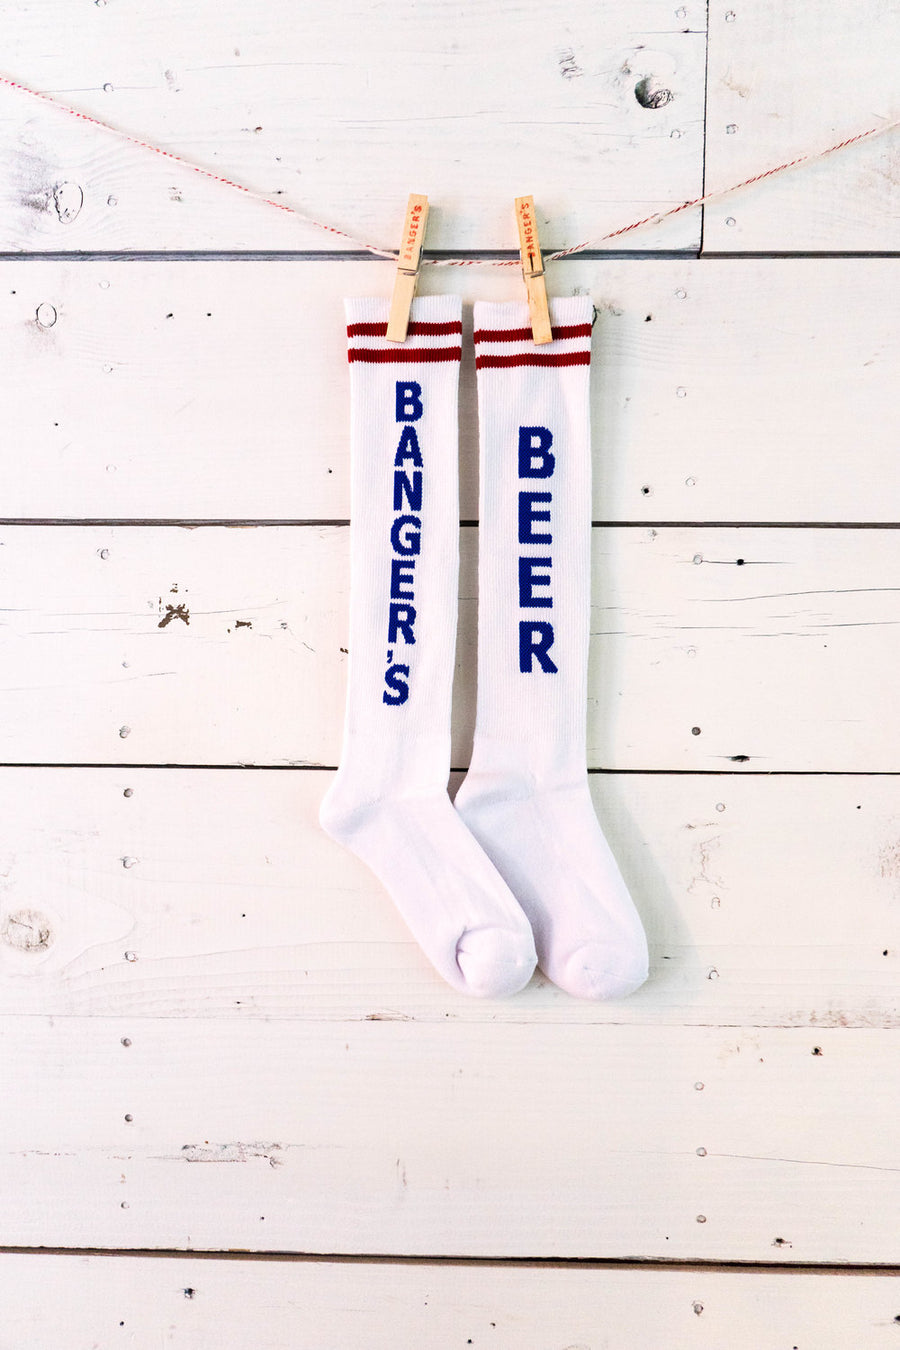 BANGER'S WHITE & BLUE SOCKS